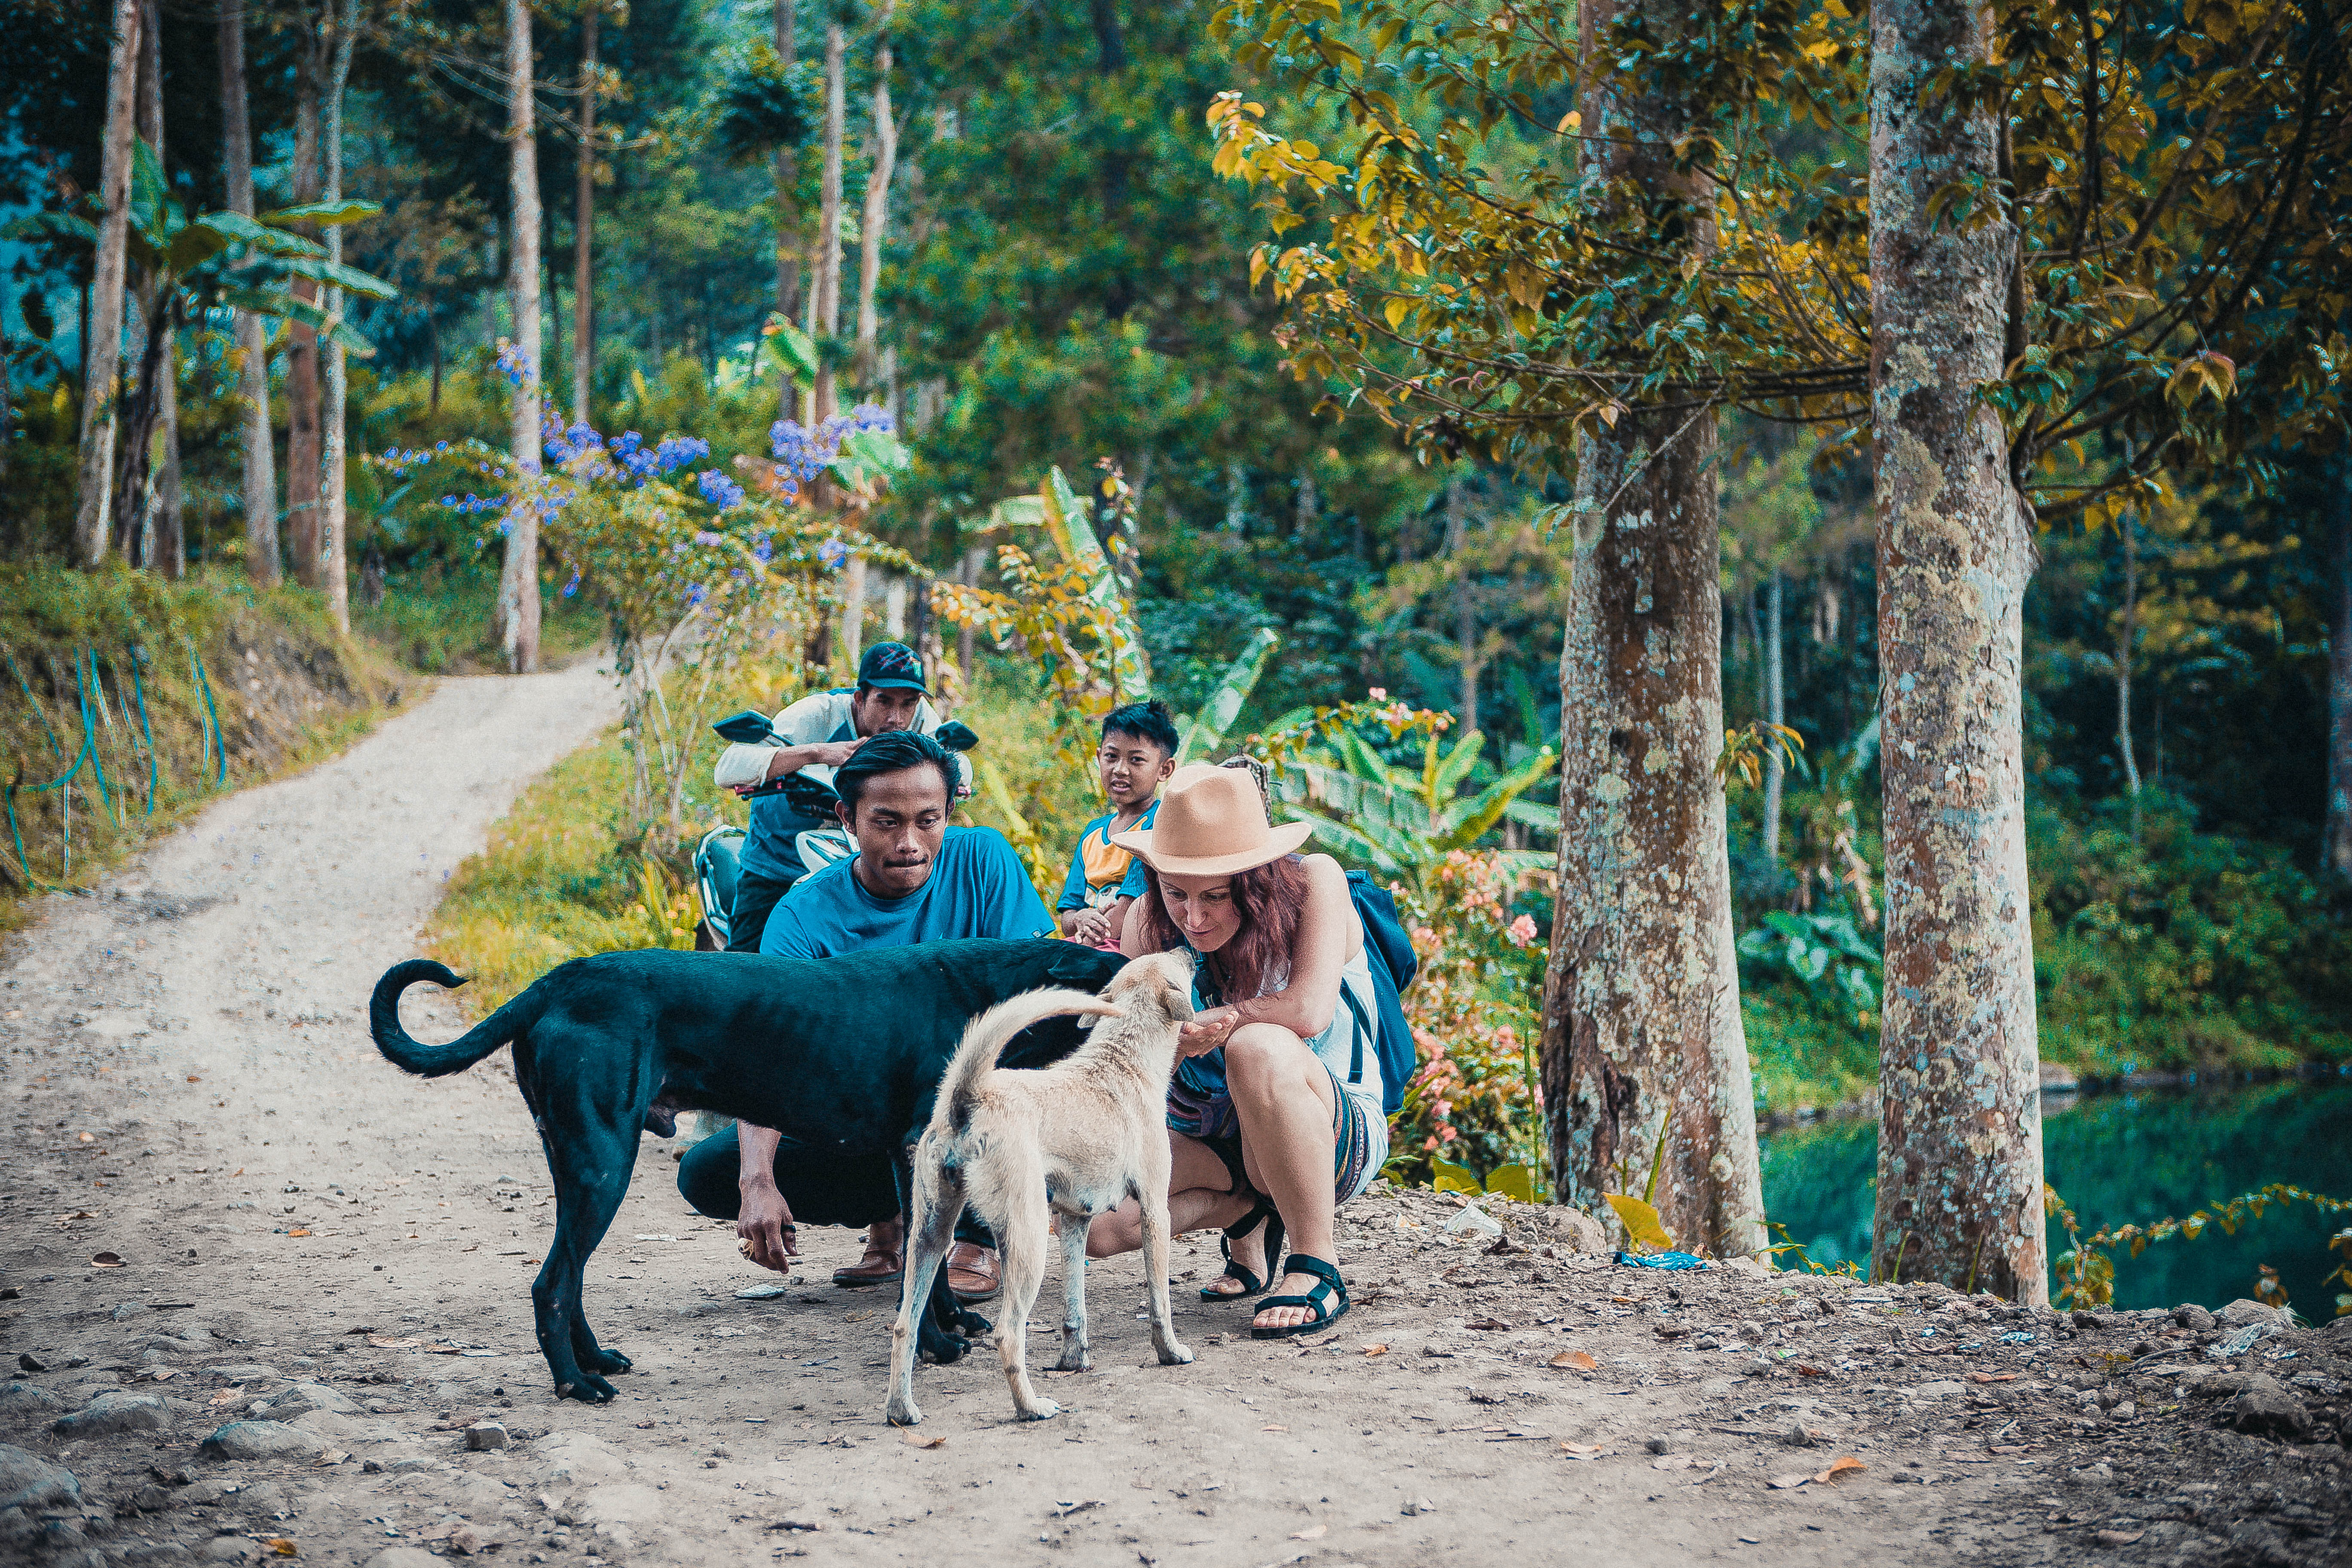 kids local people in bandung west province culture everyday life local community smiley children dogs local javanese